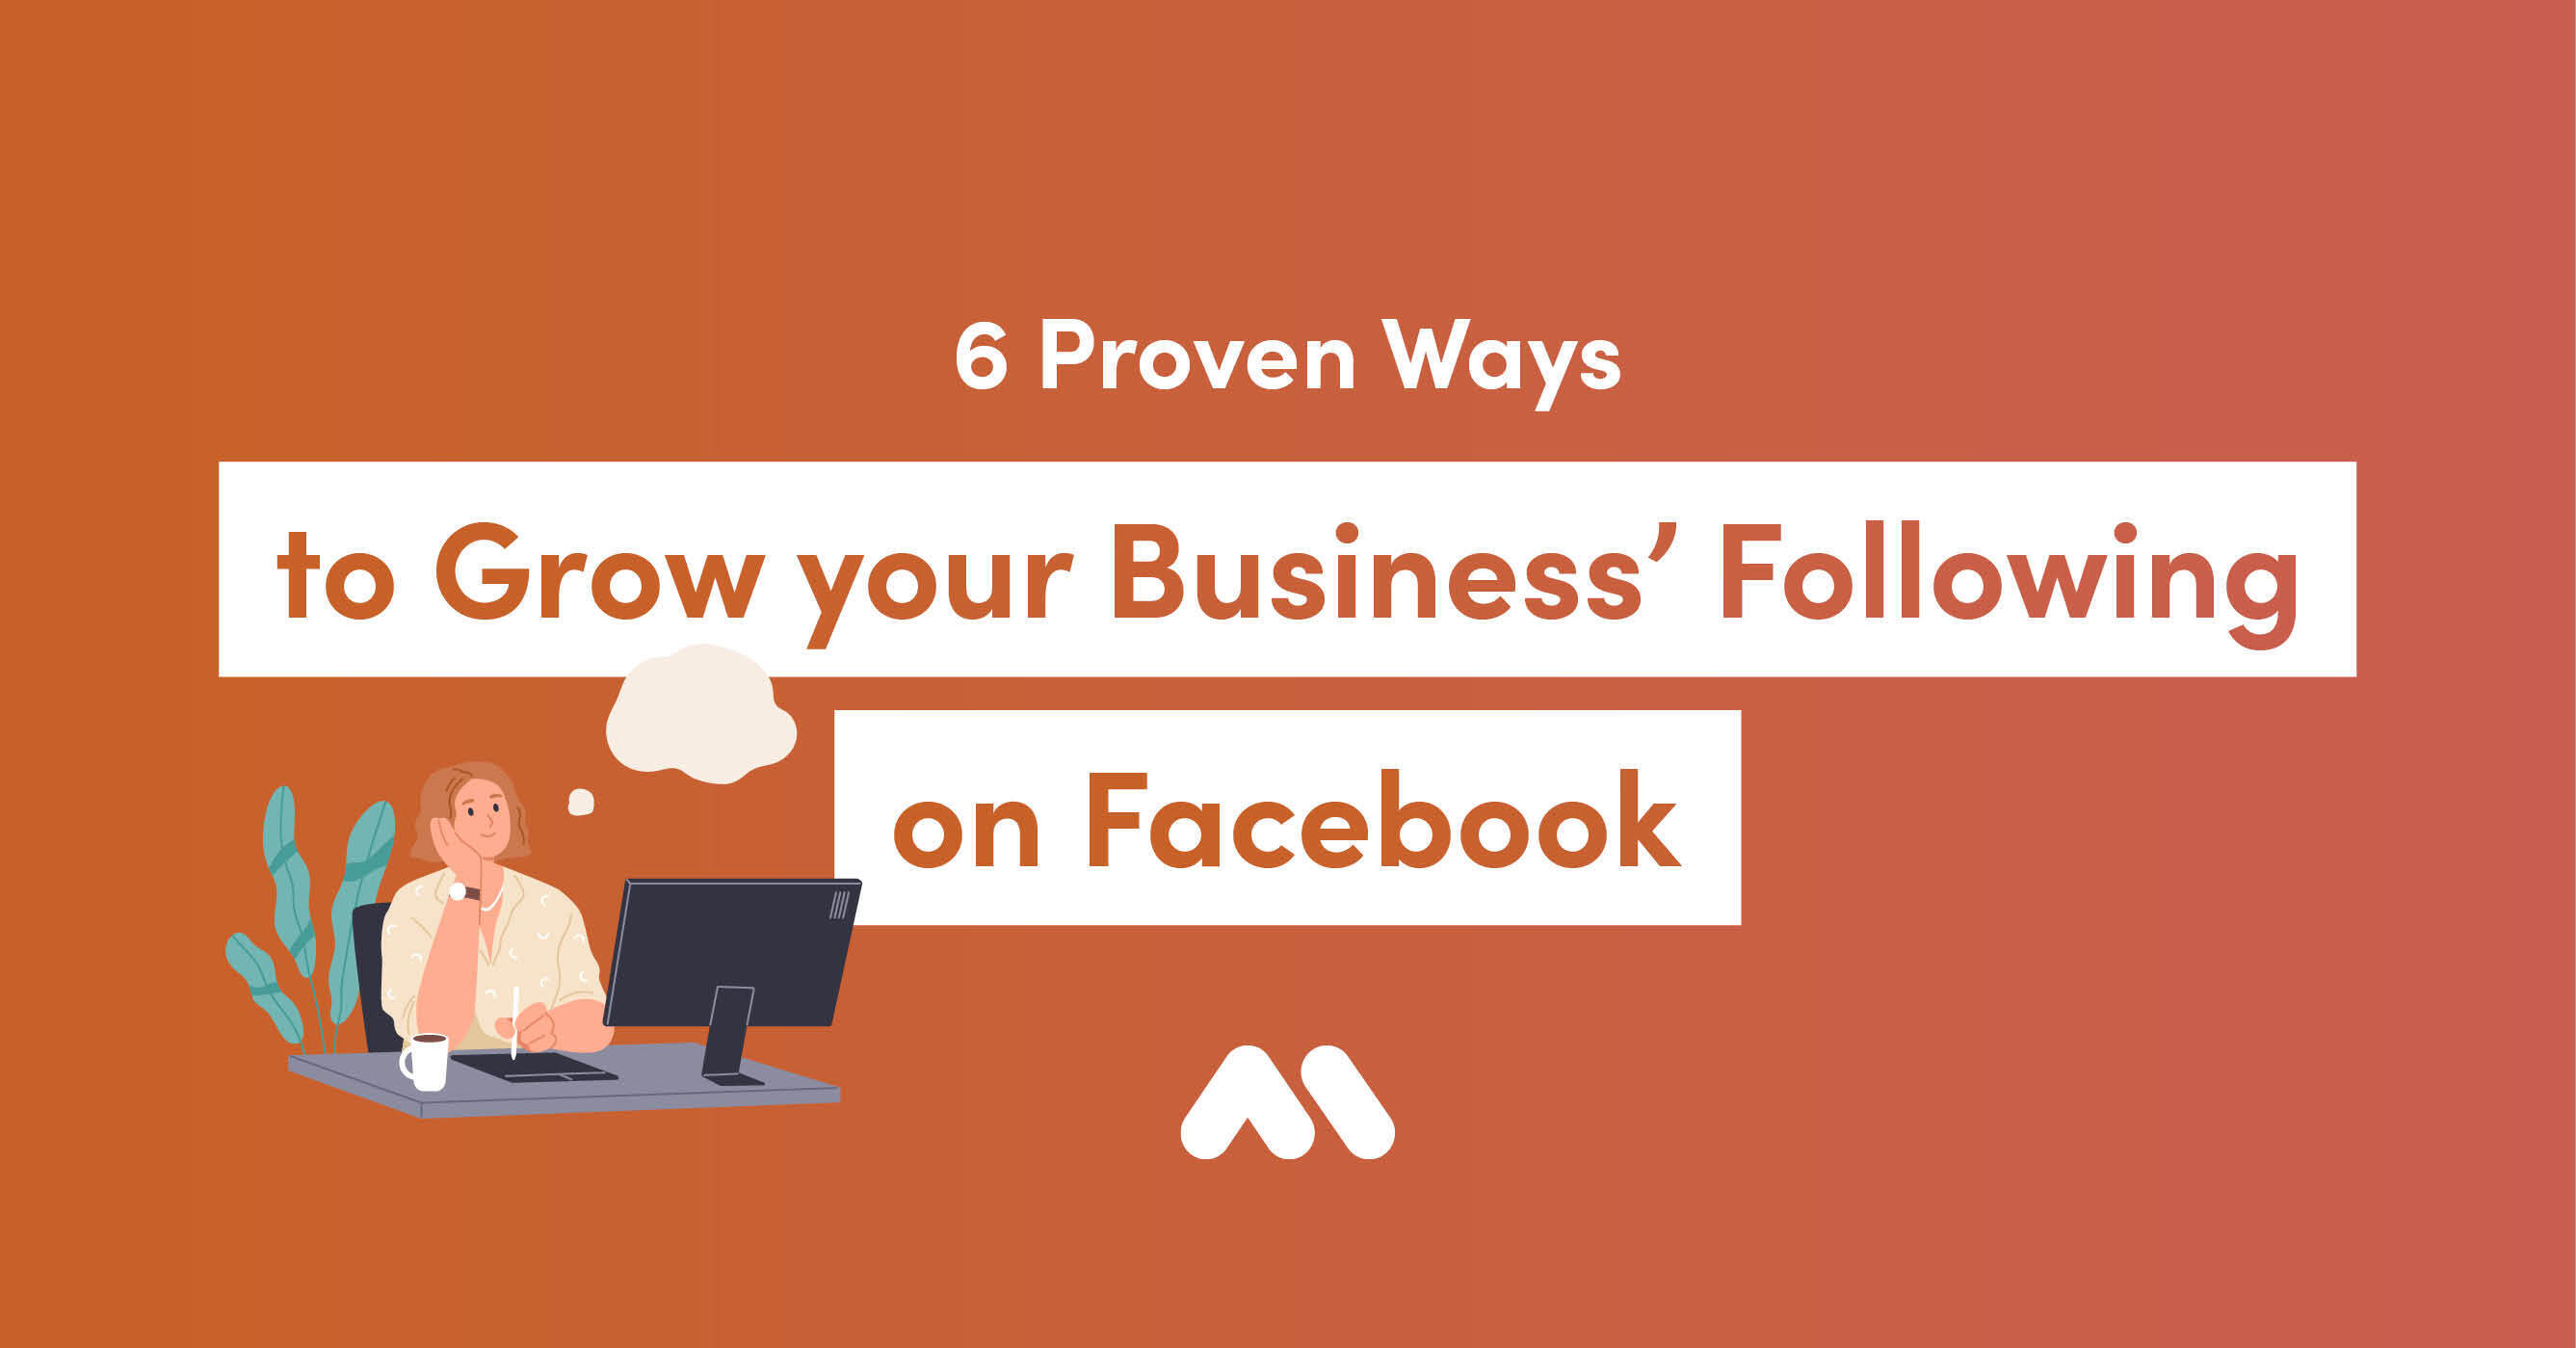 MM-6ProvenWaysGrowYourBusiness-Blog